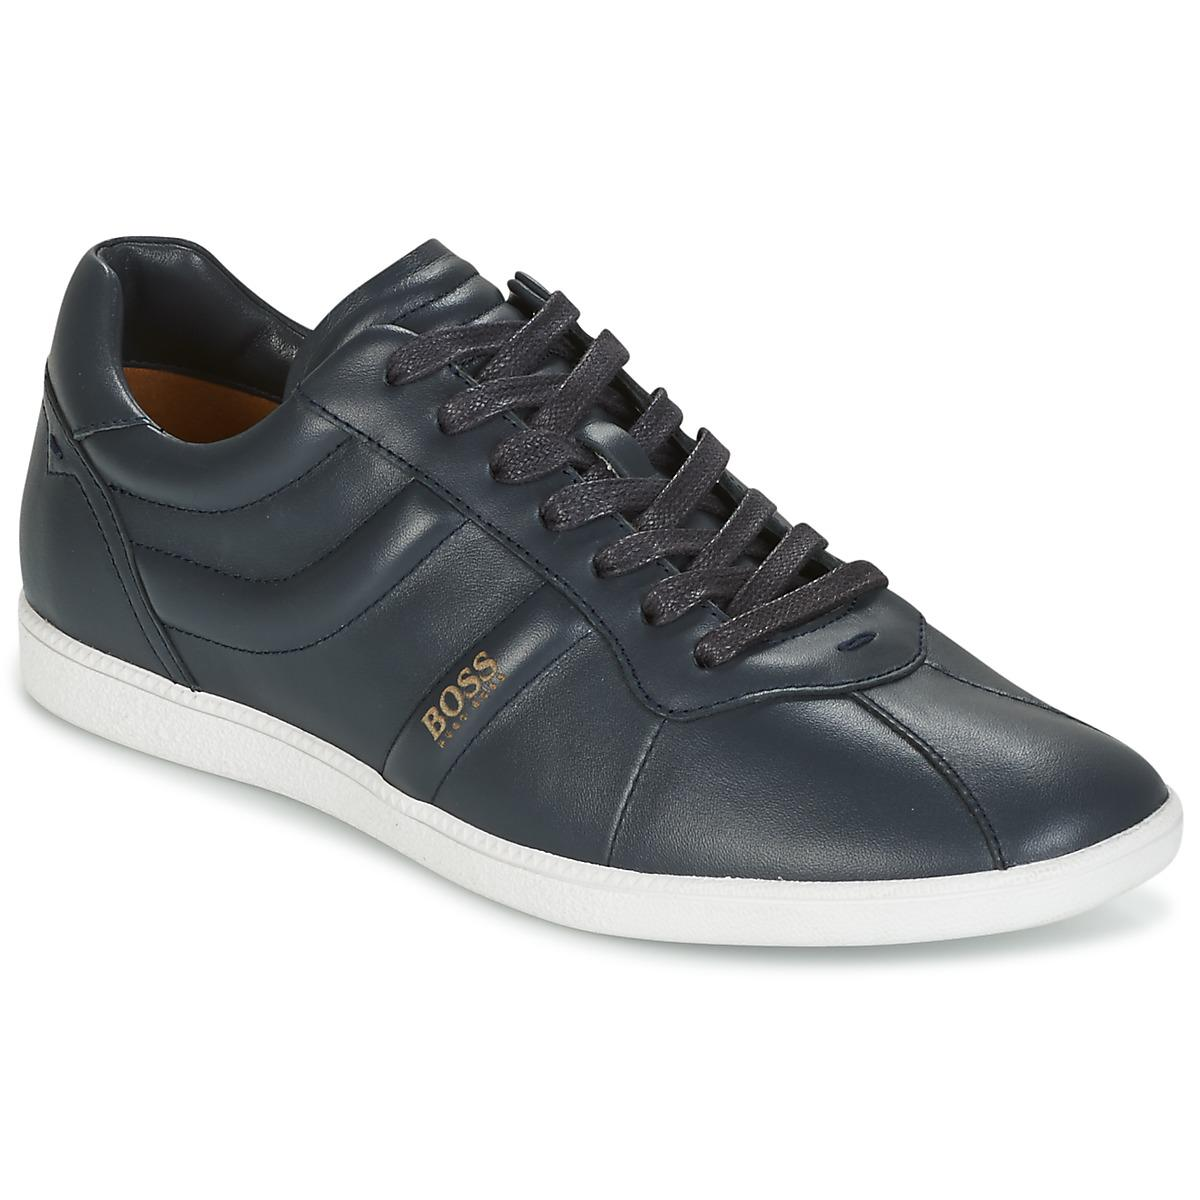 Mens Rumba_Tenn_ltpl Low-Top Sneakers, Midnight Blue Boss Orange by Hugo Boss